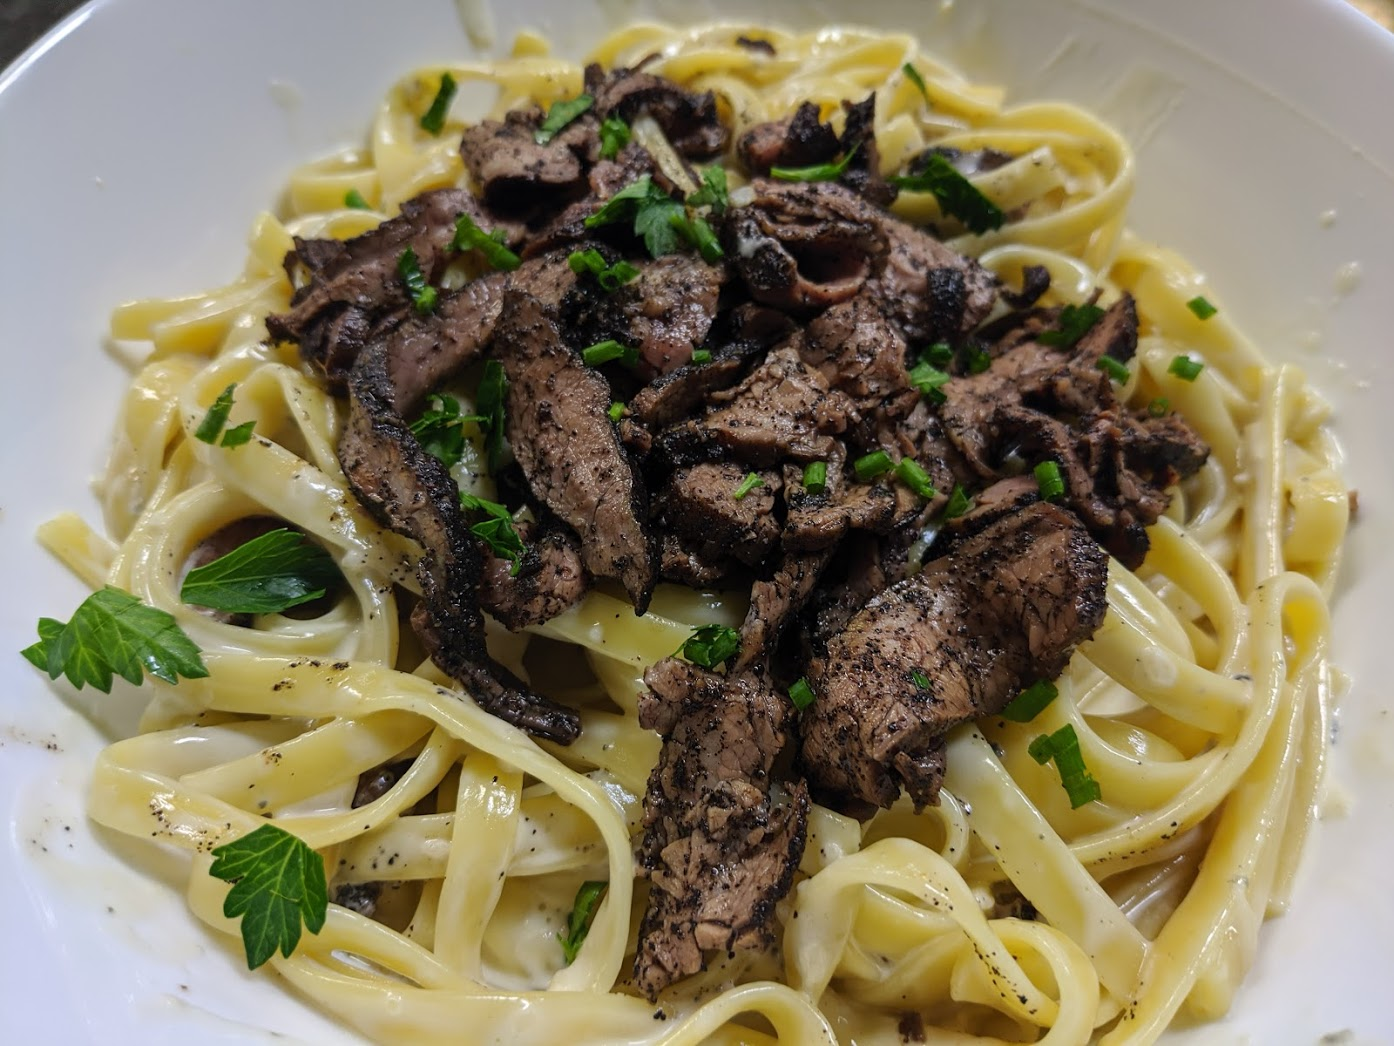 Steak Gorgonzola LInguine